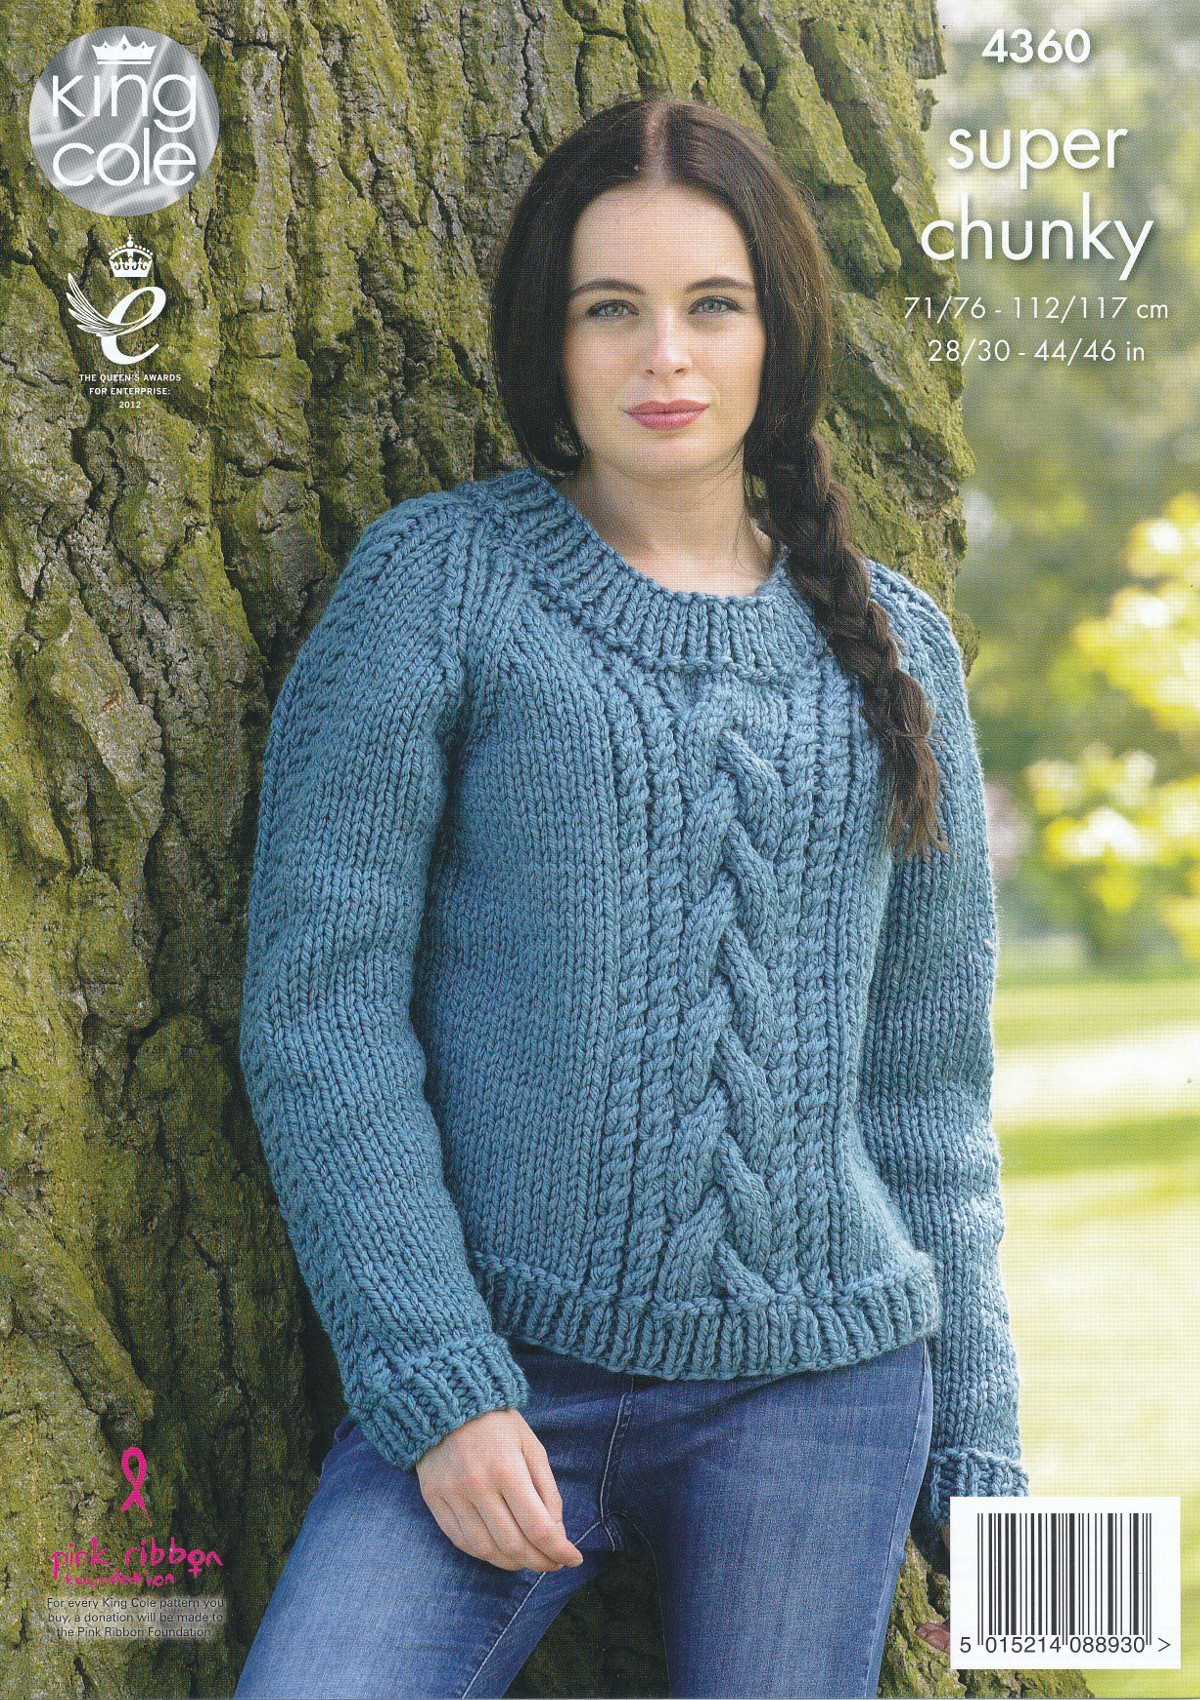 Elegant La S Super Chunky Knitting Pattern King Cole Cable Knit Cable Knit Sweater Pattern Of Beautiful Cable Knit Dog Sweater Pattern Cable Knit Sweater Pattern